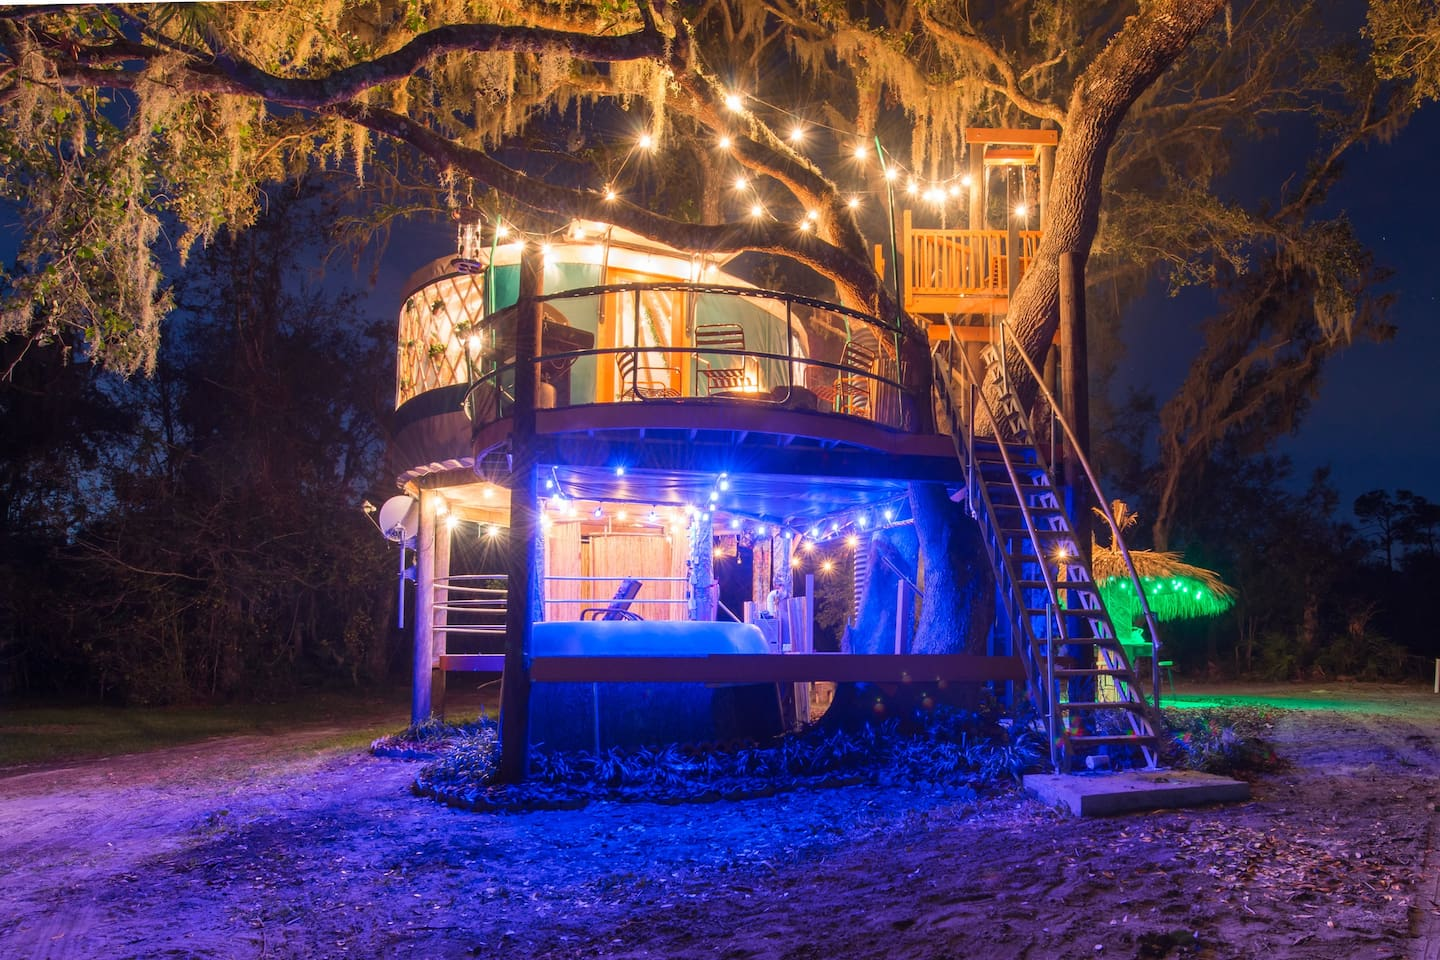 Tree house at night, blue lights over hot tub